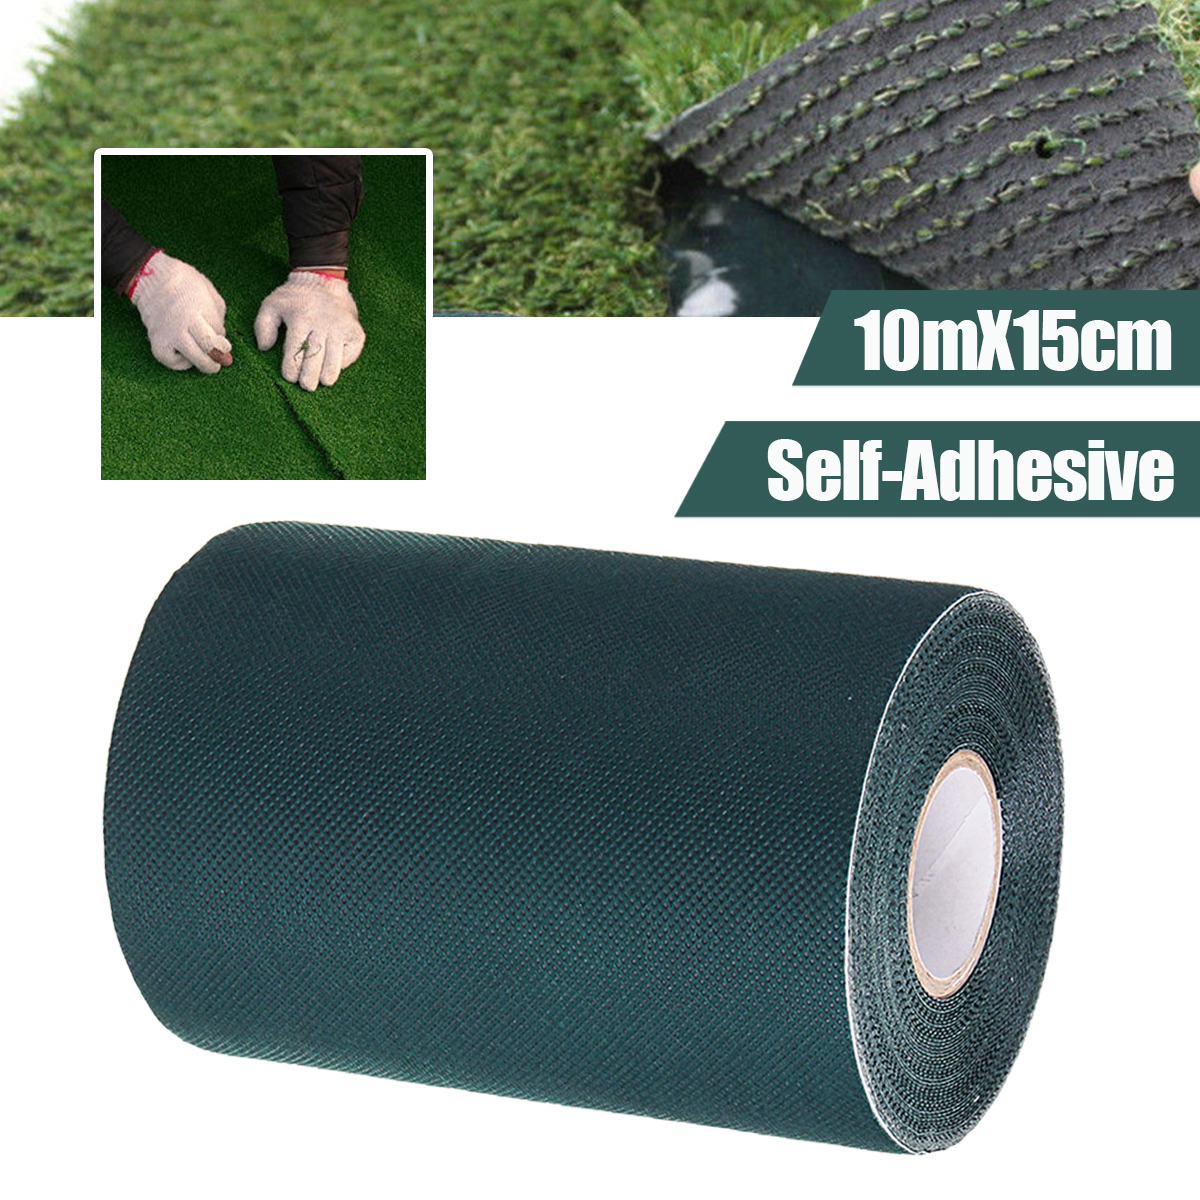 10x0.15m Self-Adhesive Artificial Turf Tape Synthetic Turf Grass Joining Lawn Tape Glue